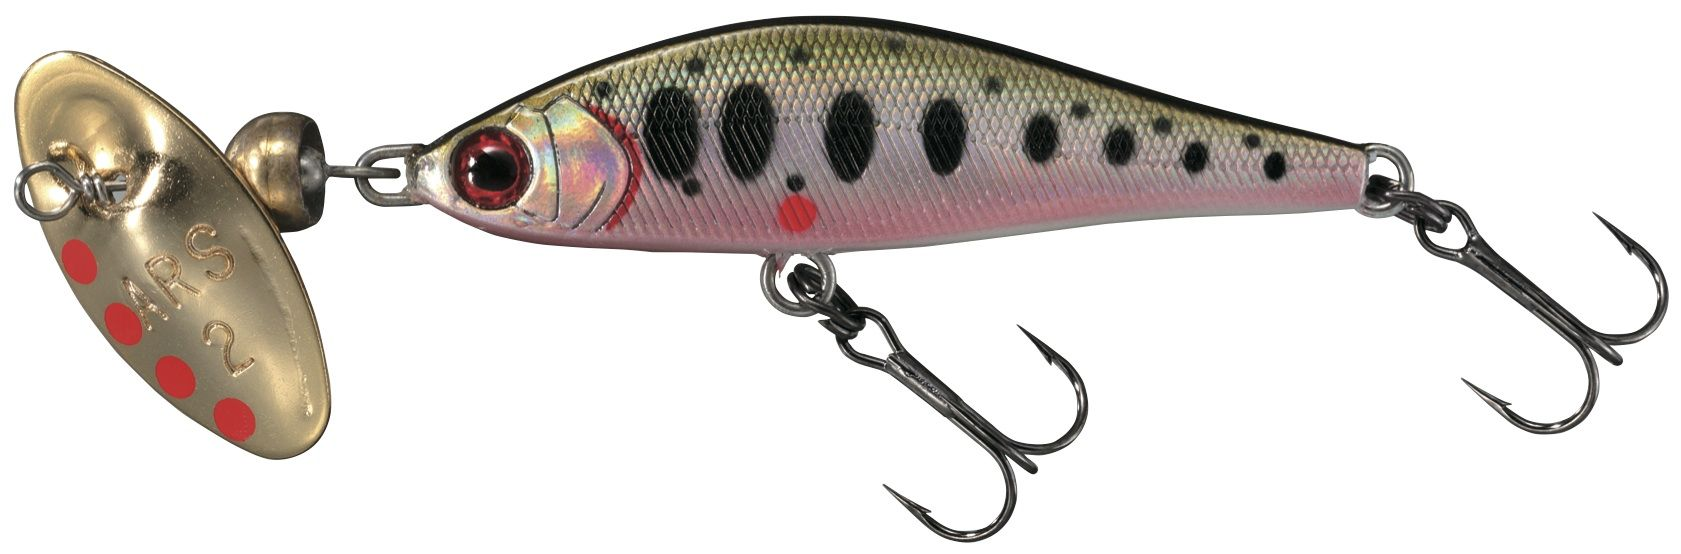 Блесна Smith AR-HD Minnow 45HS